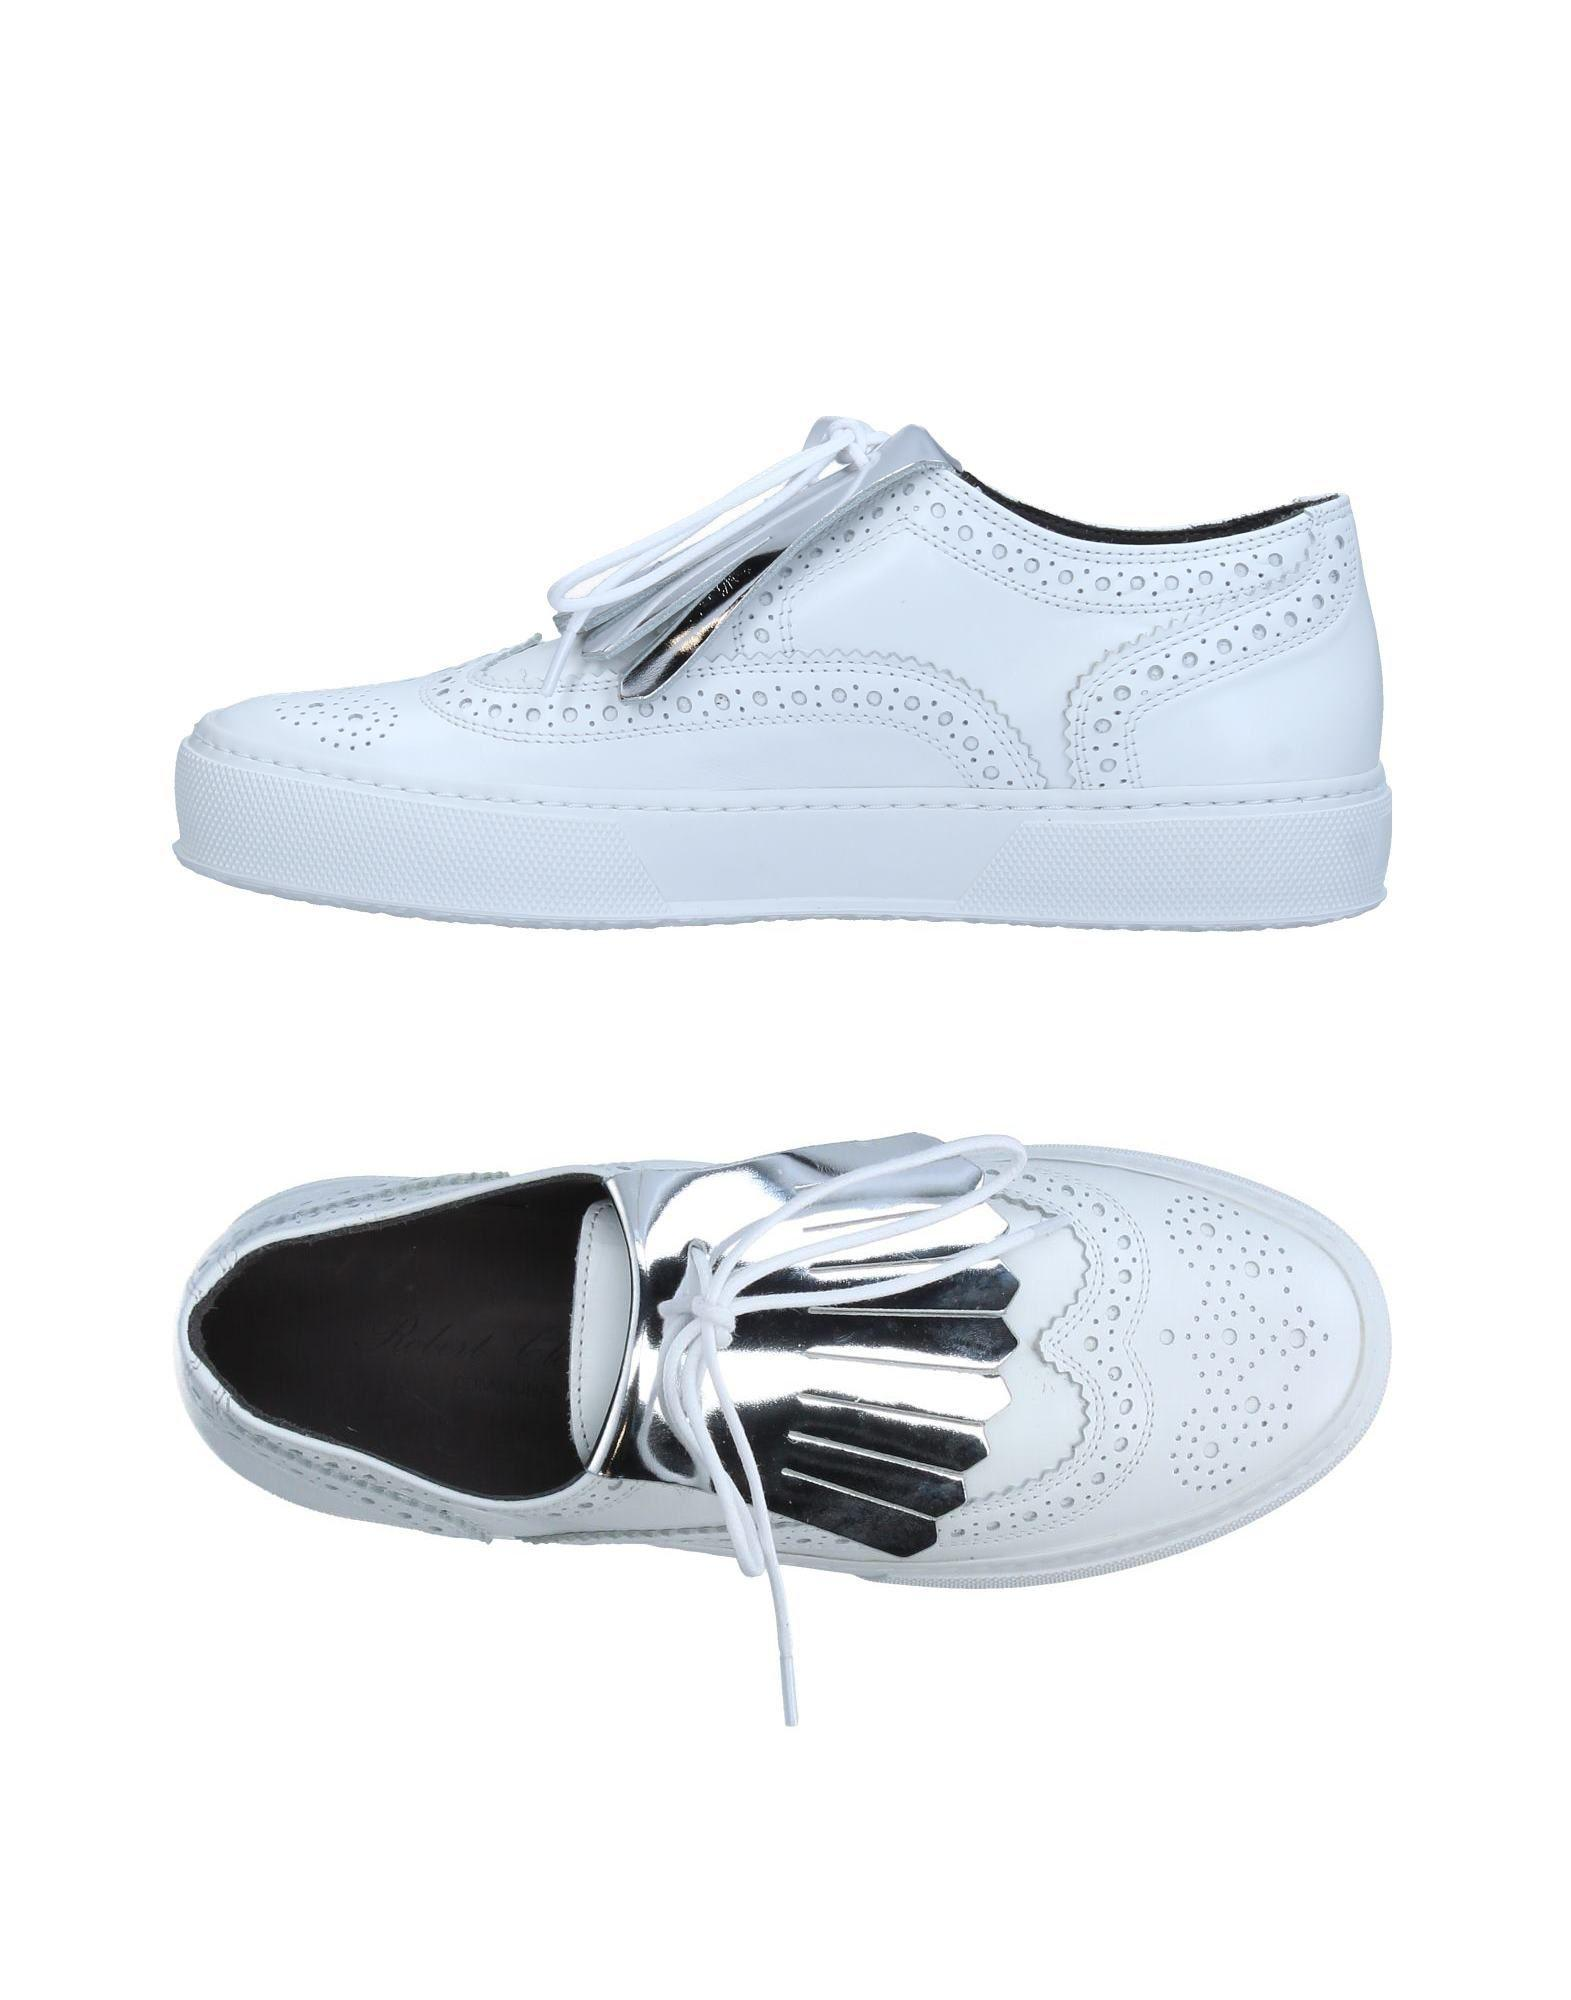 FOOTWEAR - Low-tops & sneakers Robert Clergerie blGvth